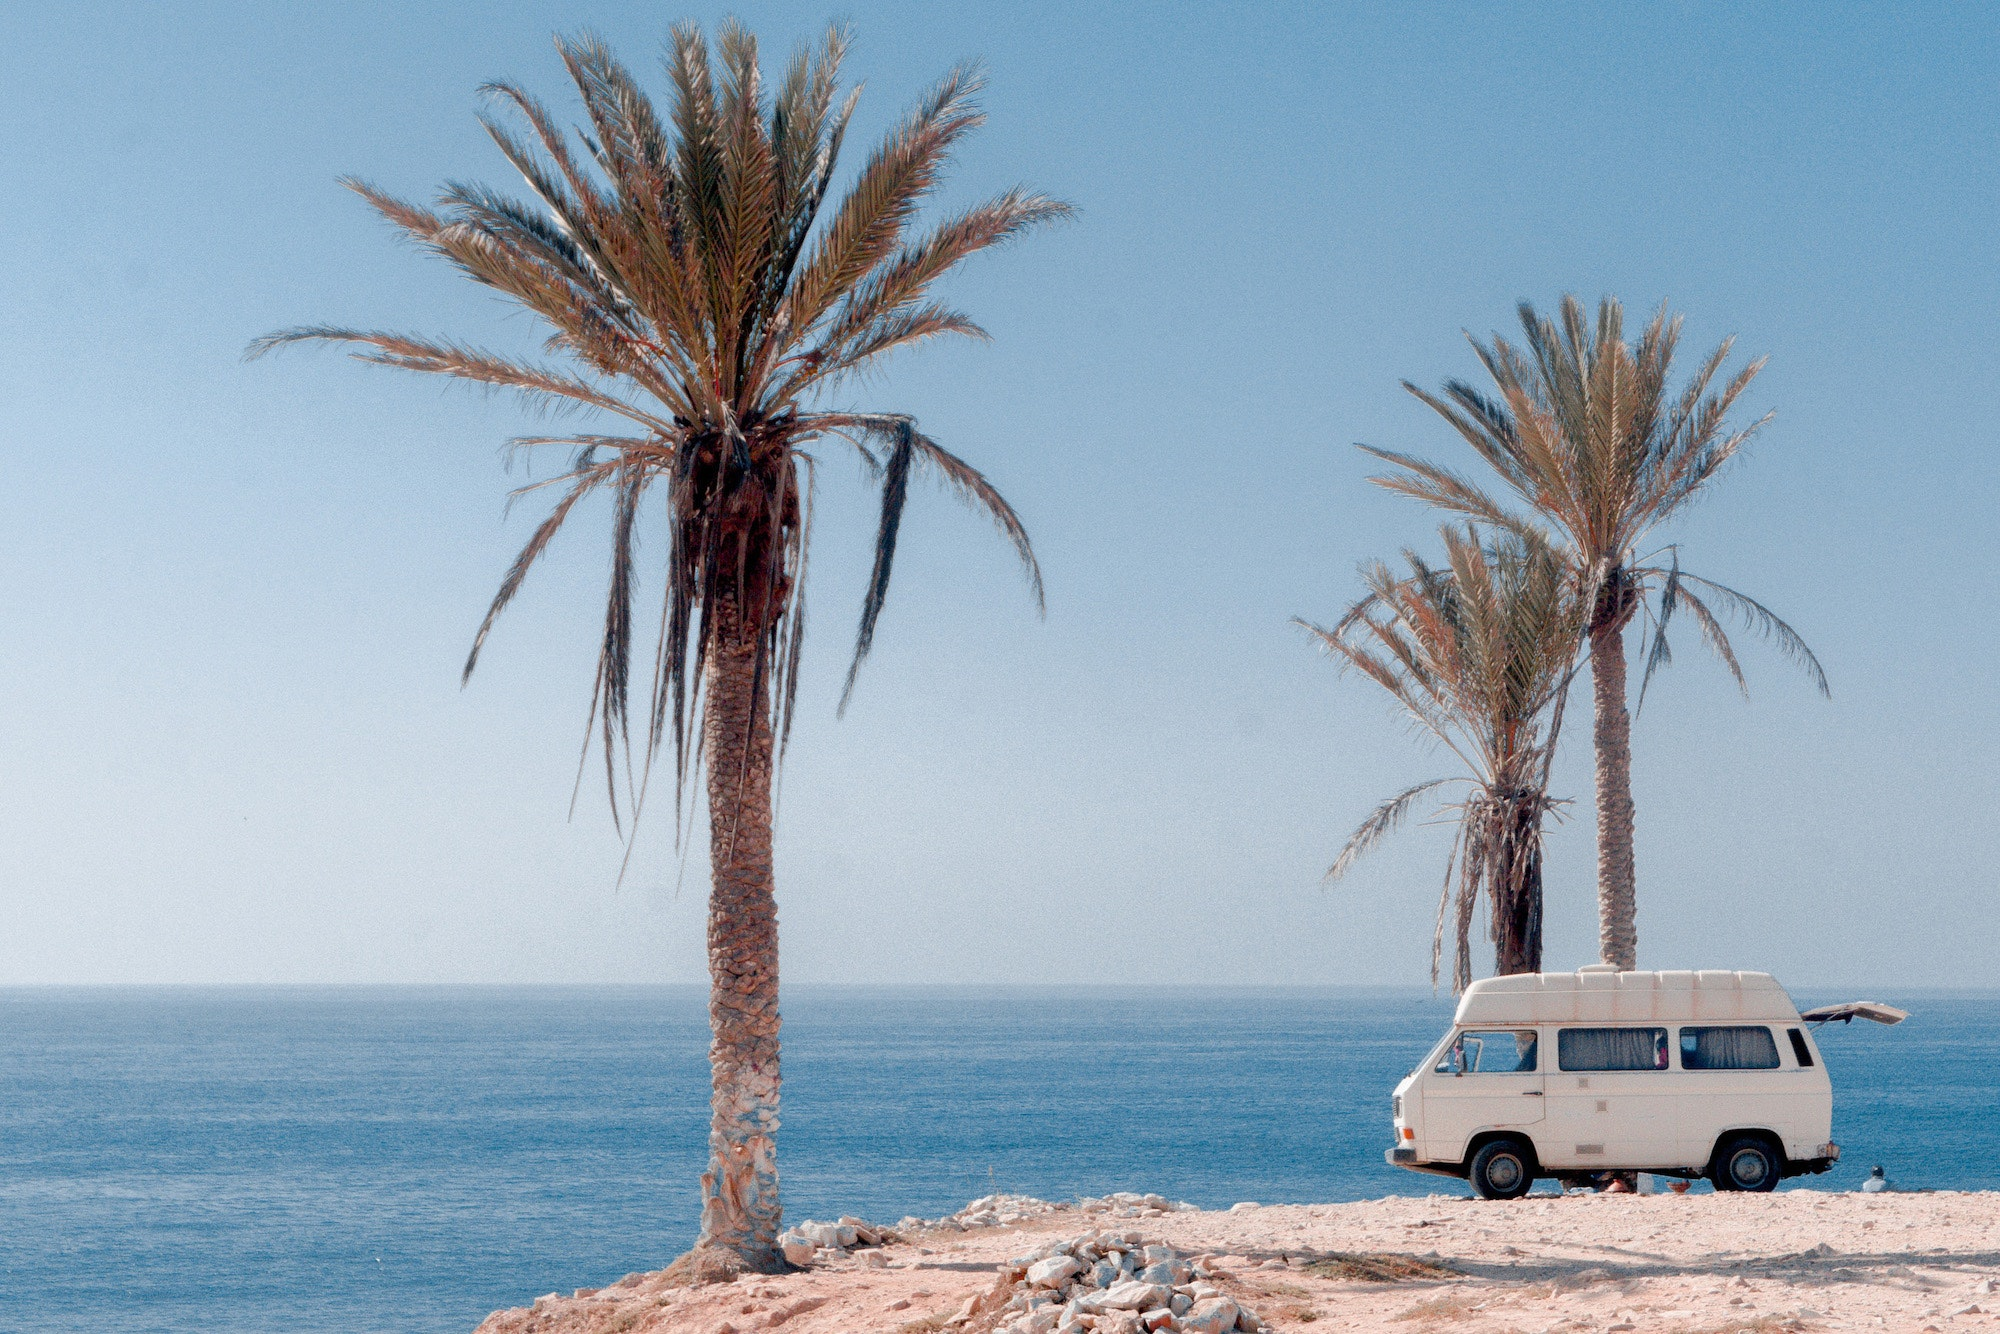 California offers plenty of beachside camp spots perfect for parking and relaxing for a while.